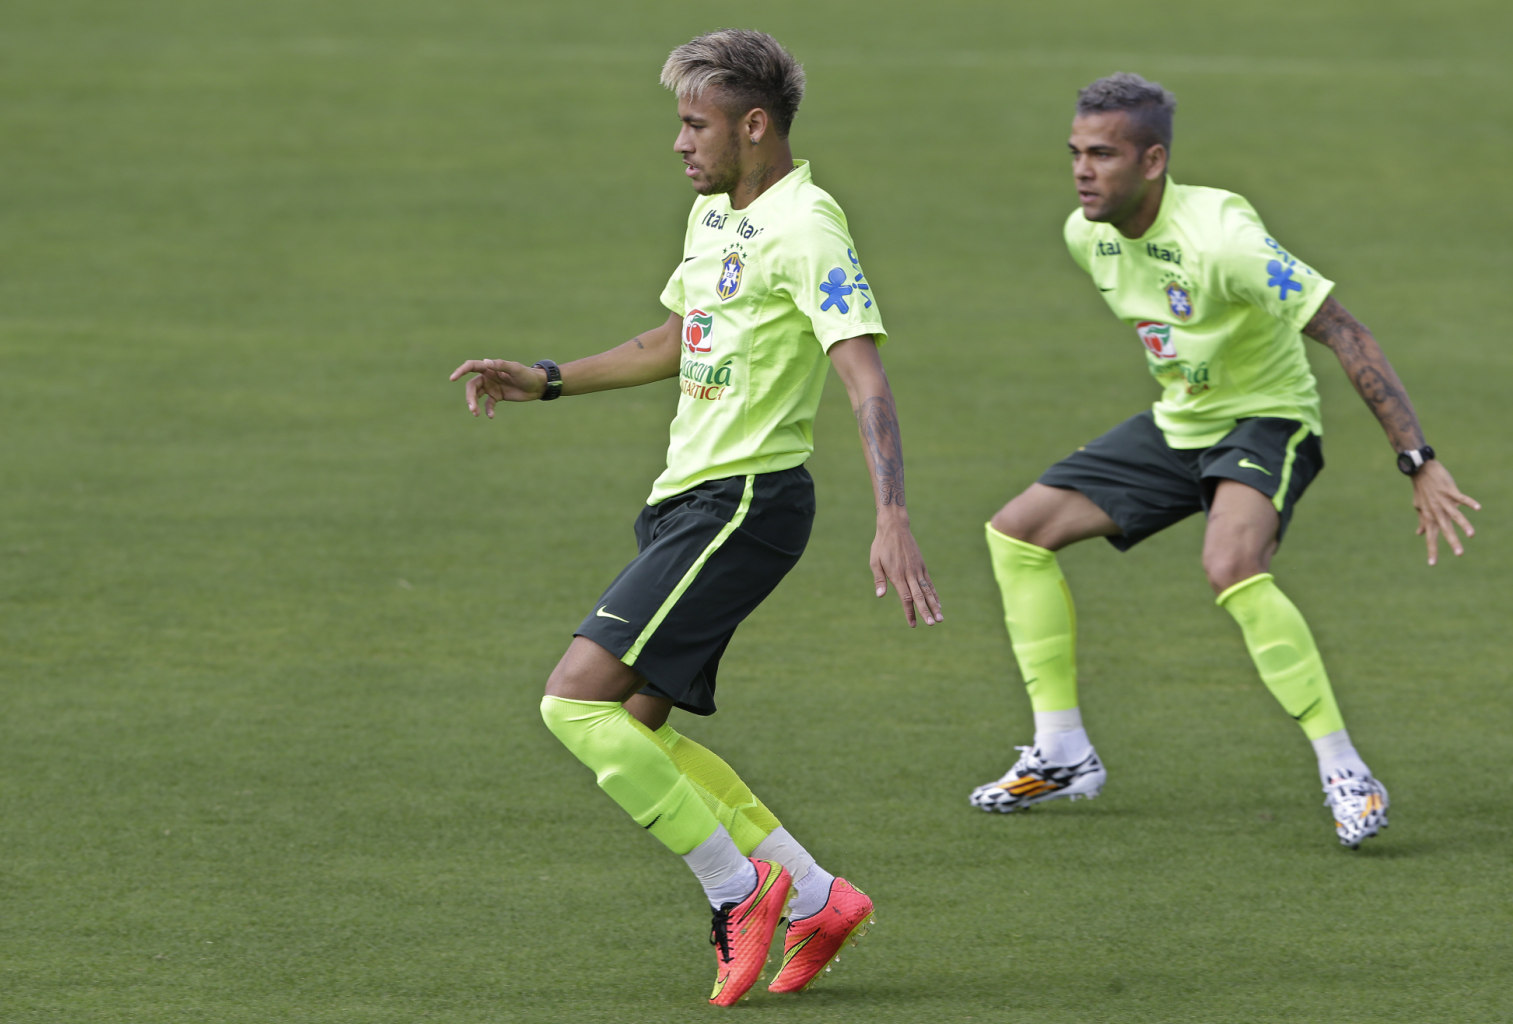 Neymar and Daniel Alves new look, in Brazil's training session in World Cup 2014